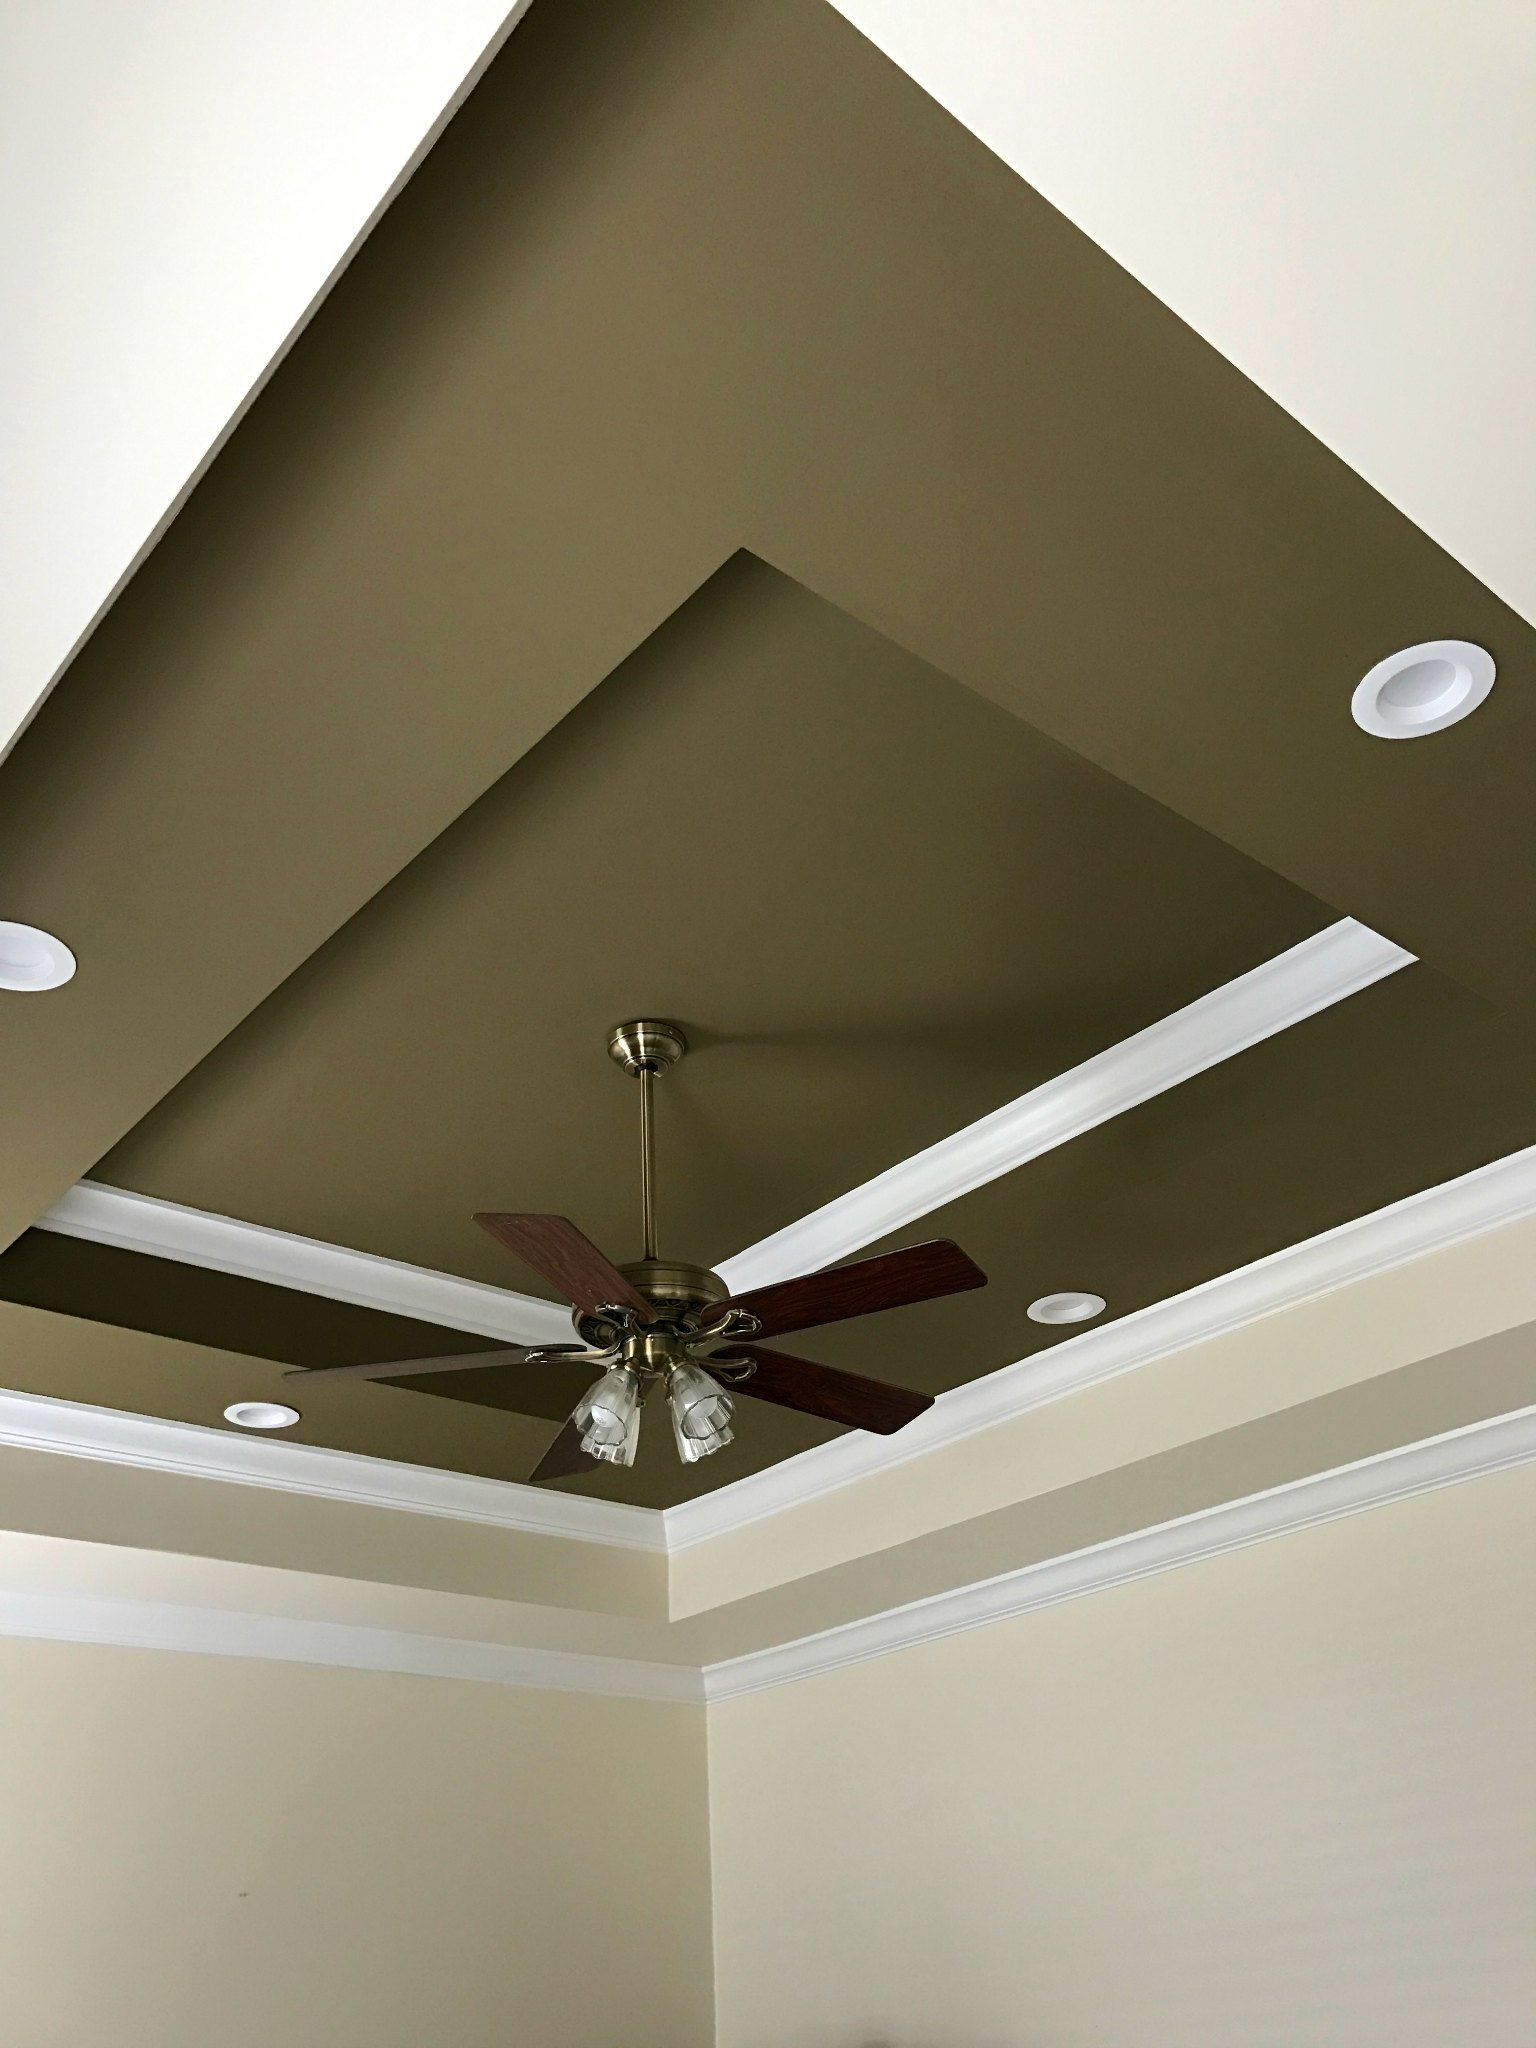 How To Choose The Right Paint Every Single Time At Home With The Barkers Ceiling Design Modern False Ceiling Design Ceiling Design